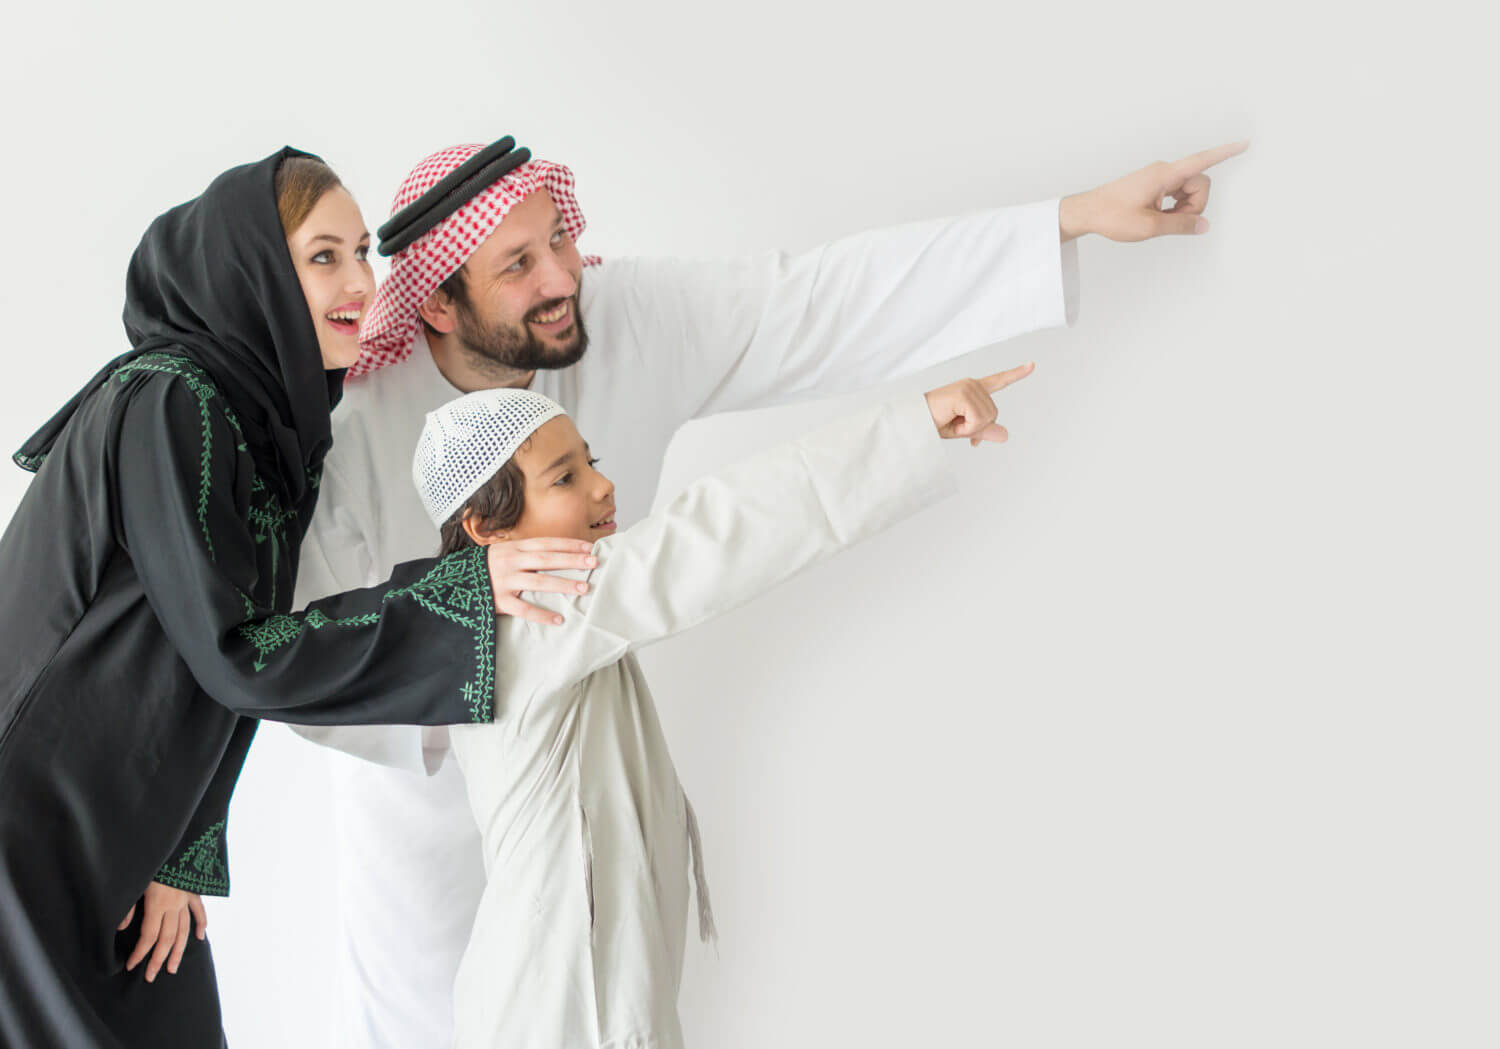 5 Most Important Secrets to a Happy Married Life in Islam